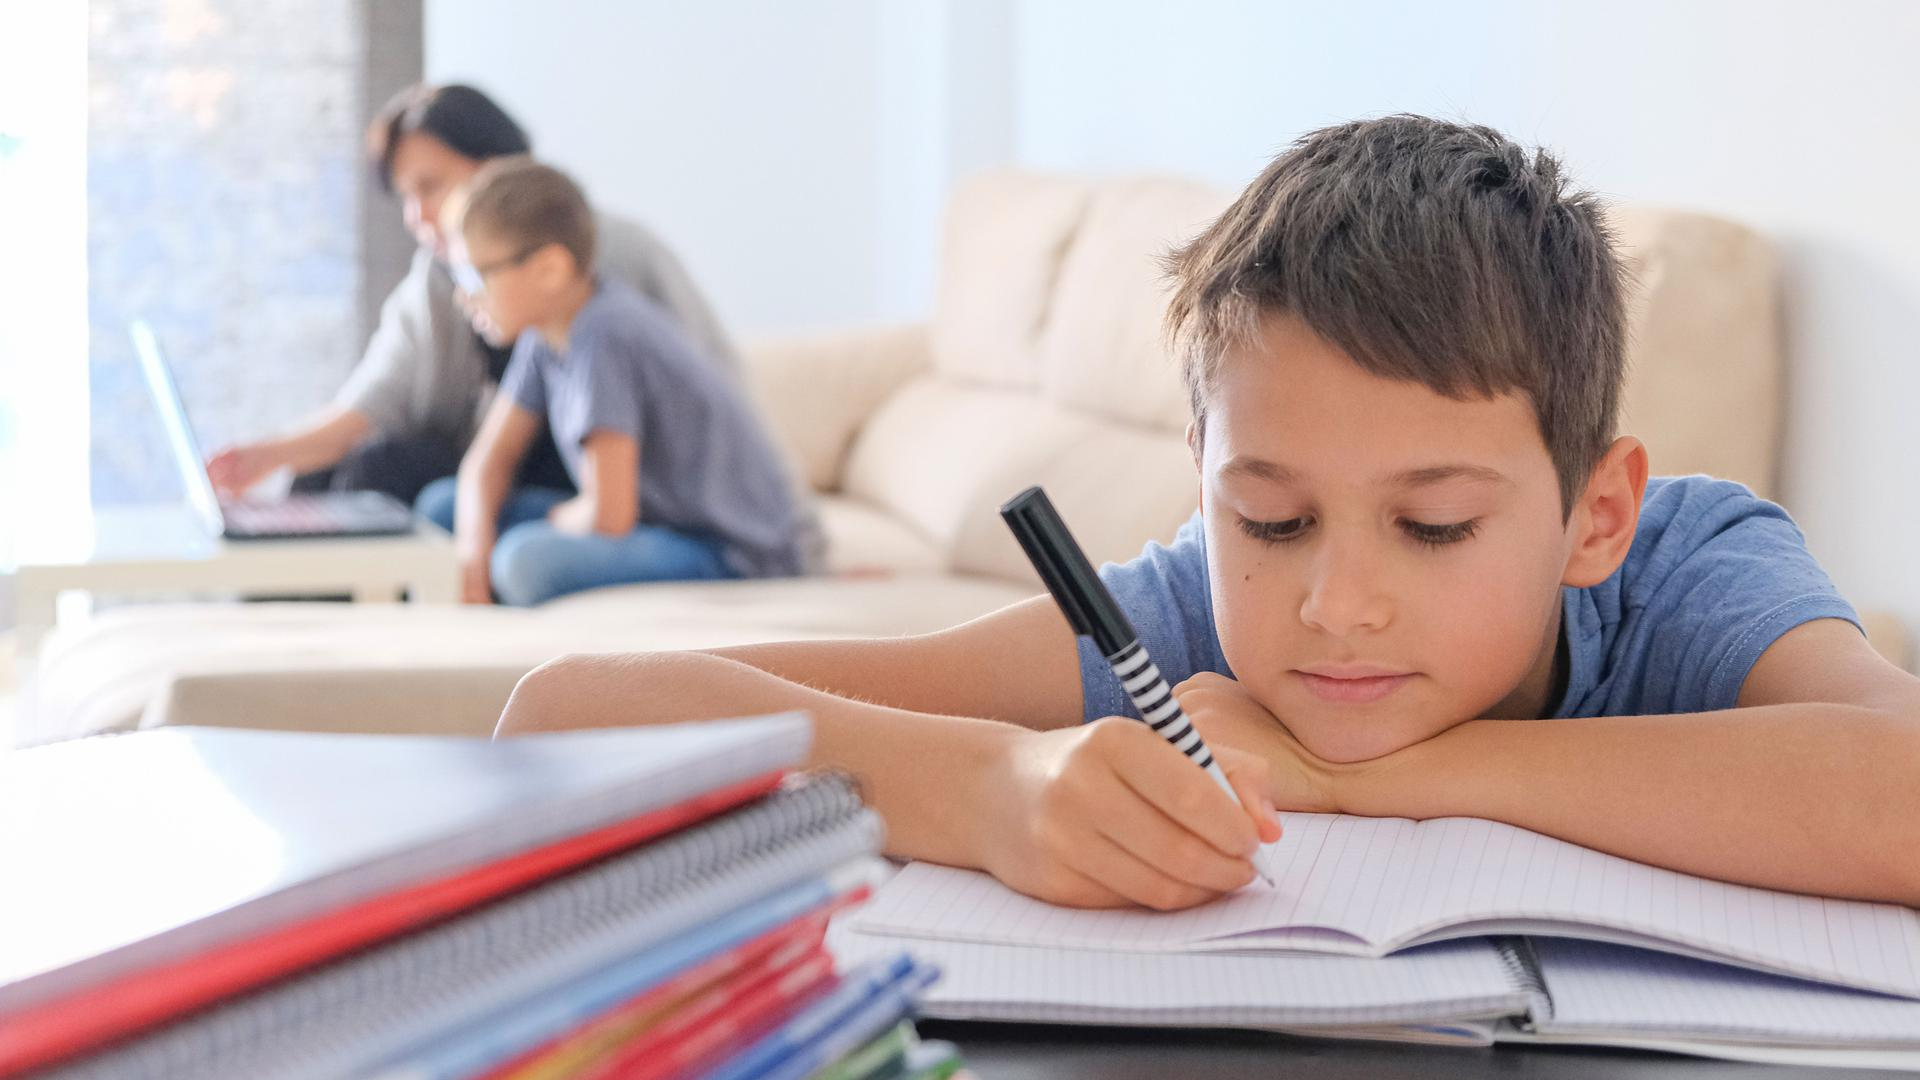 Learning at home, online learning, self quarantine concept. Family at home. Children doing homework with books, textbooks and with computer online, mother help to kids.